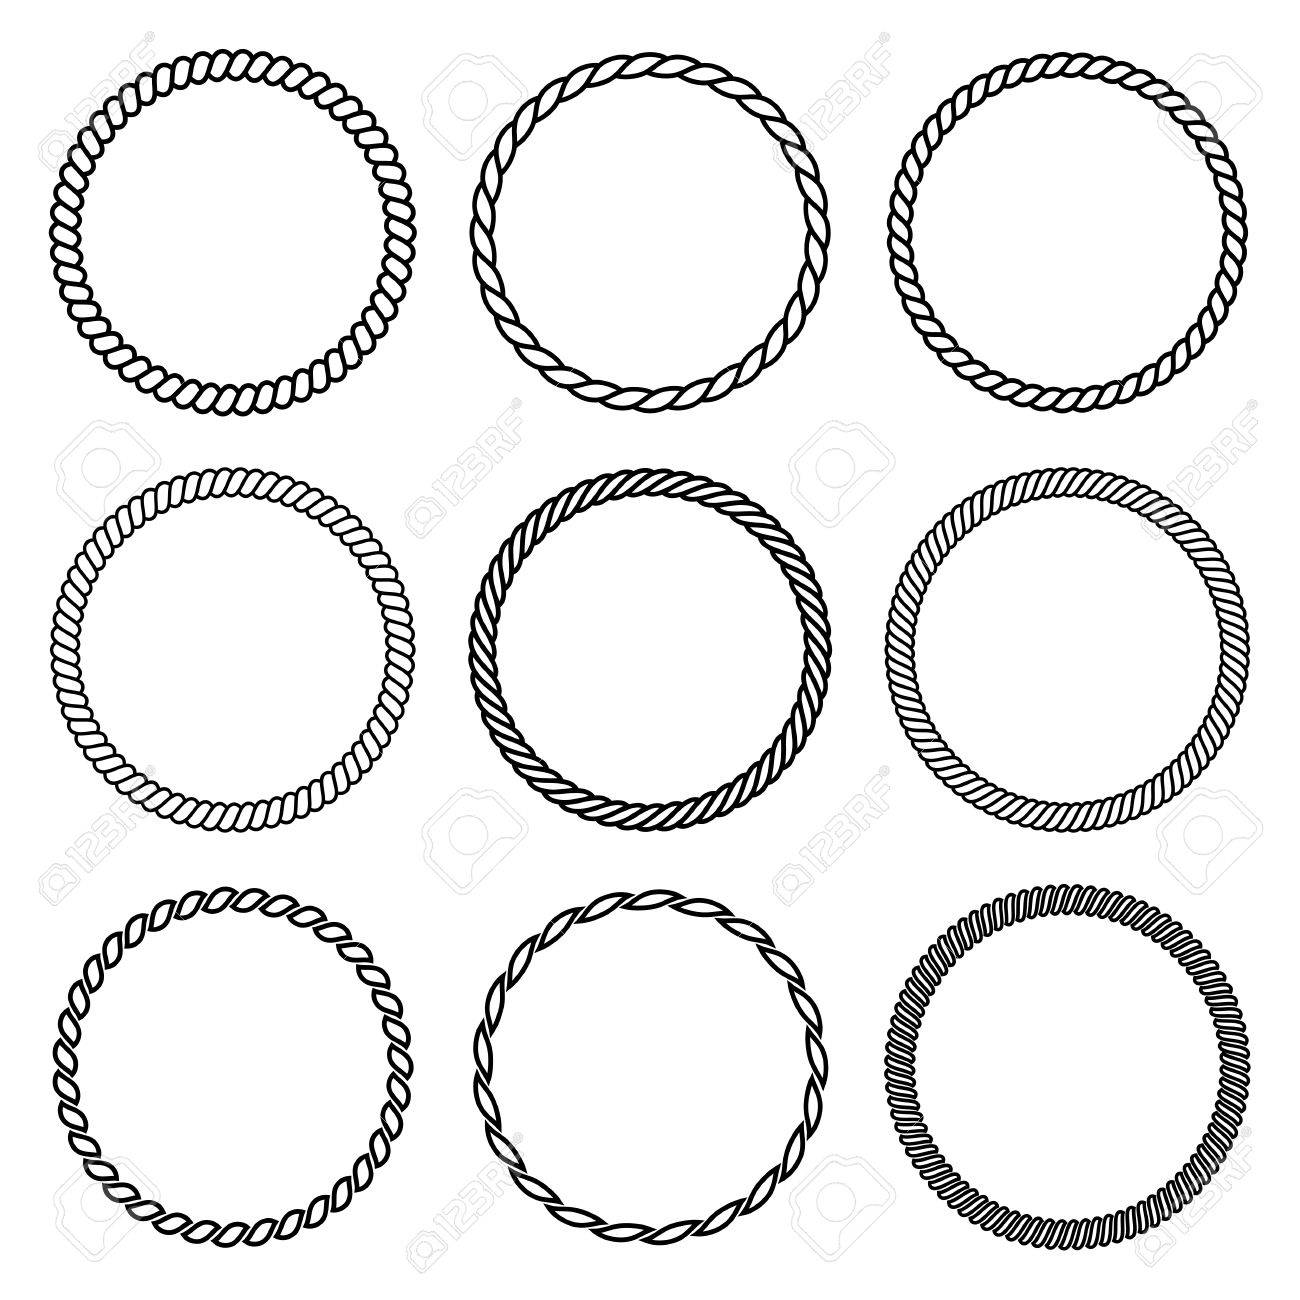 2c8b97d5c3 Vector - Vector set of round rope frame. Collection of thick and thin  circles isolated on the white background consisting of braided cord and  string.